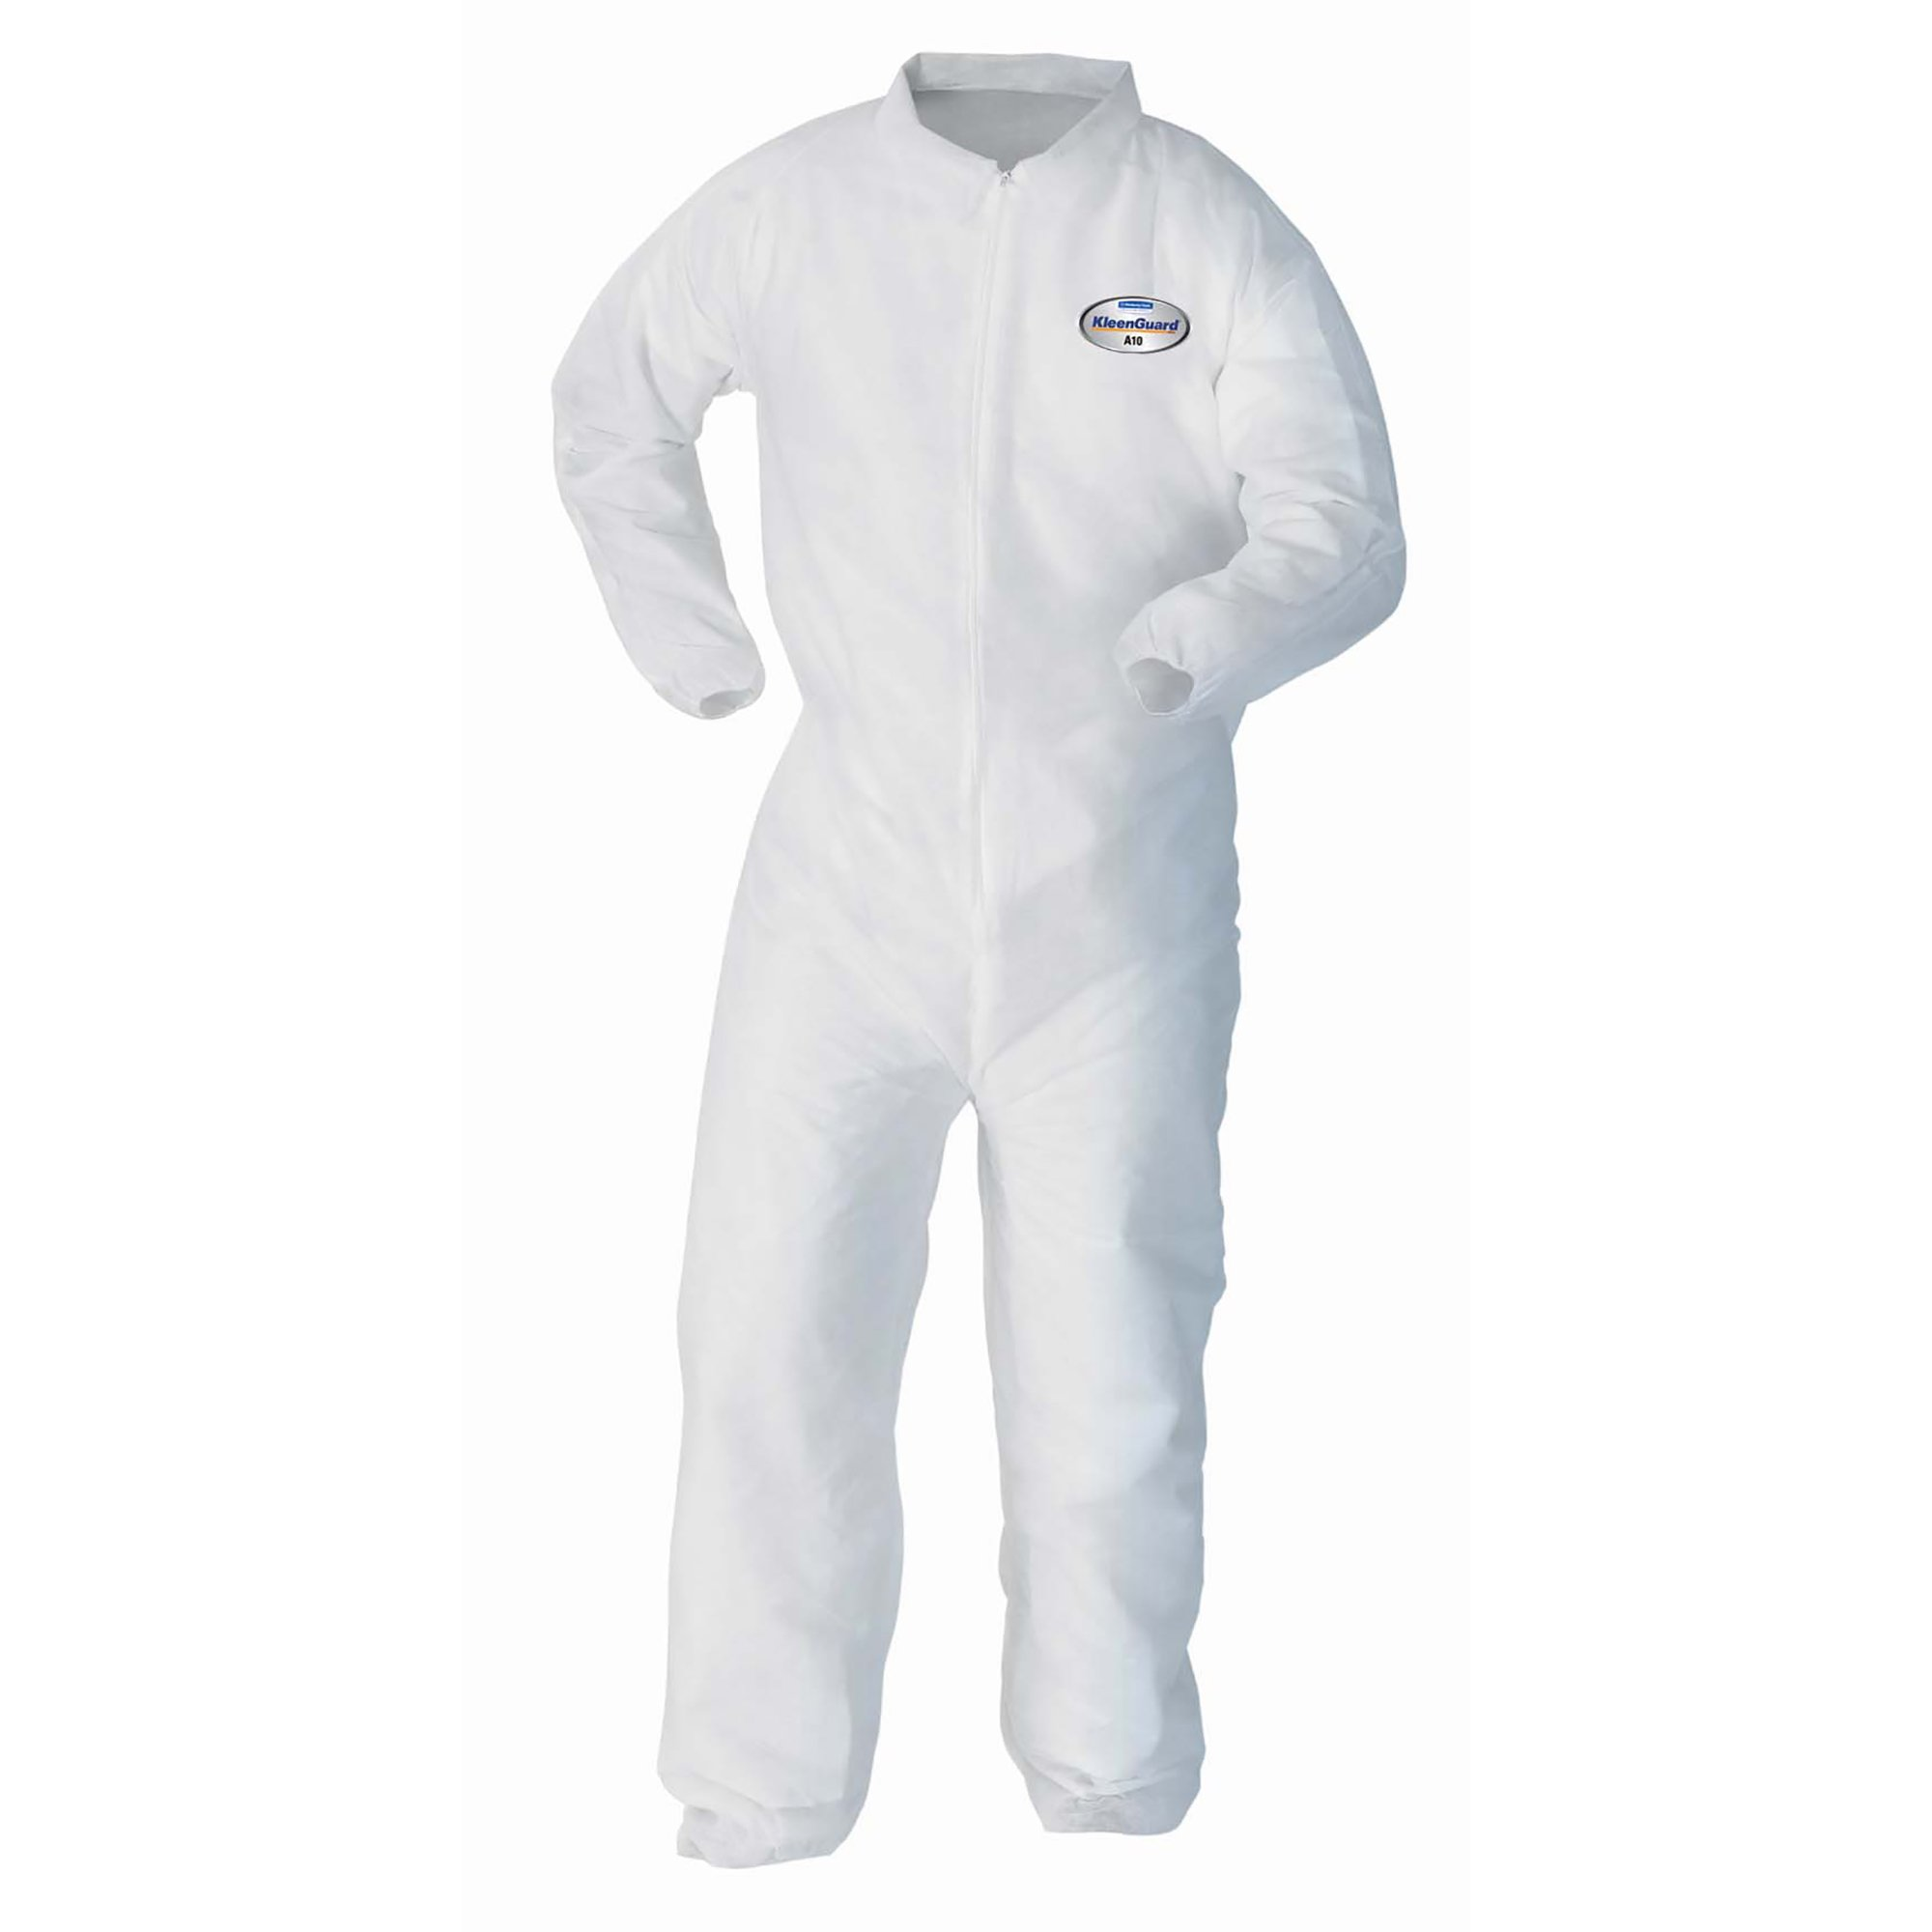 Kleenguard A10 Light Duty Coveralls (10636), Zip Front, Elastic Wrists, Breathable Material, White, XL, 25 / Case